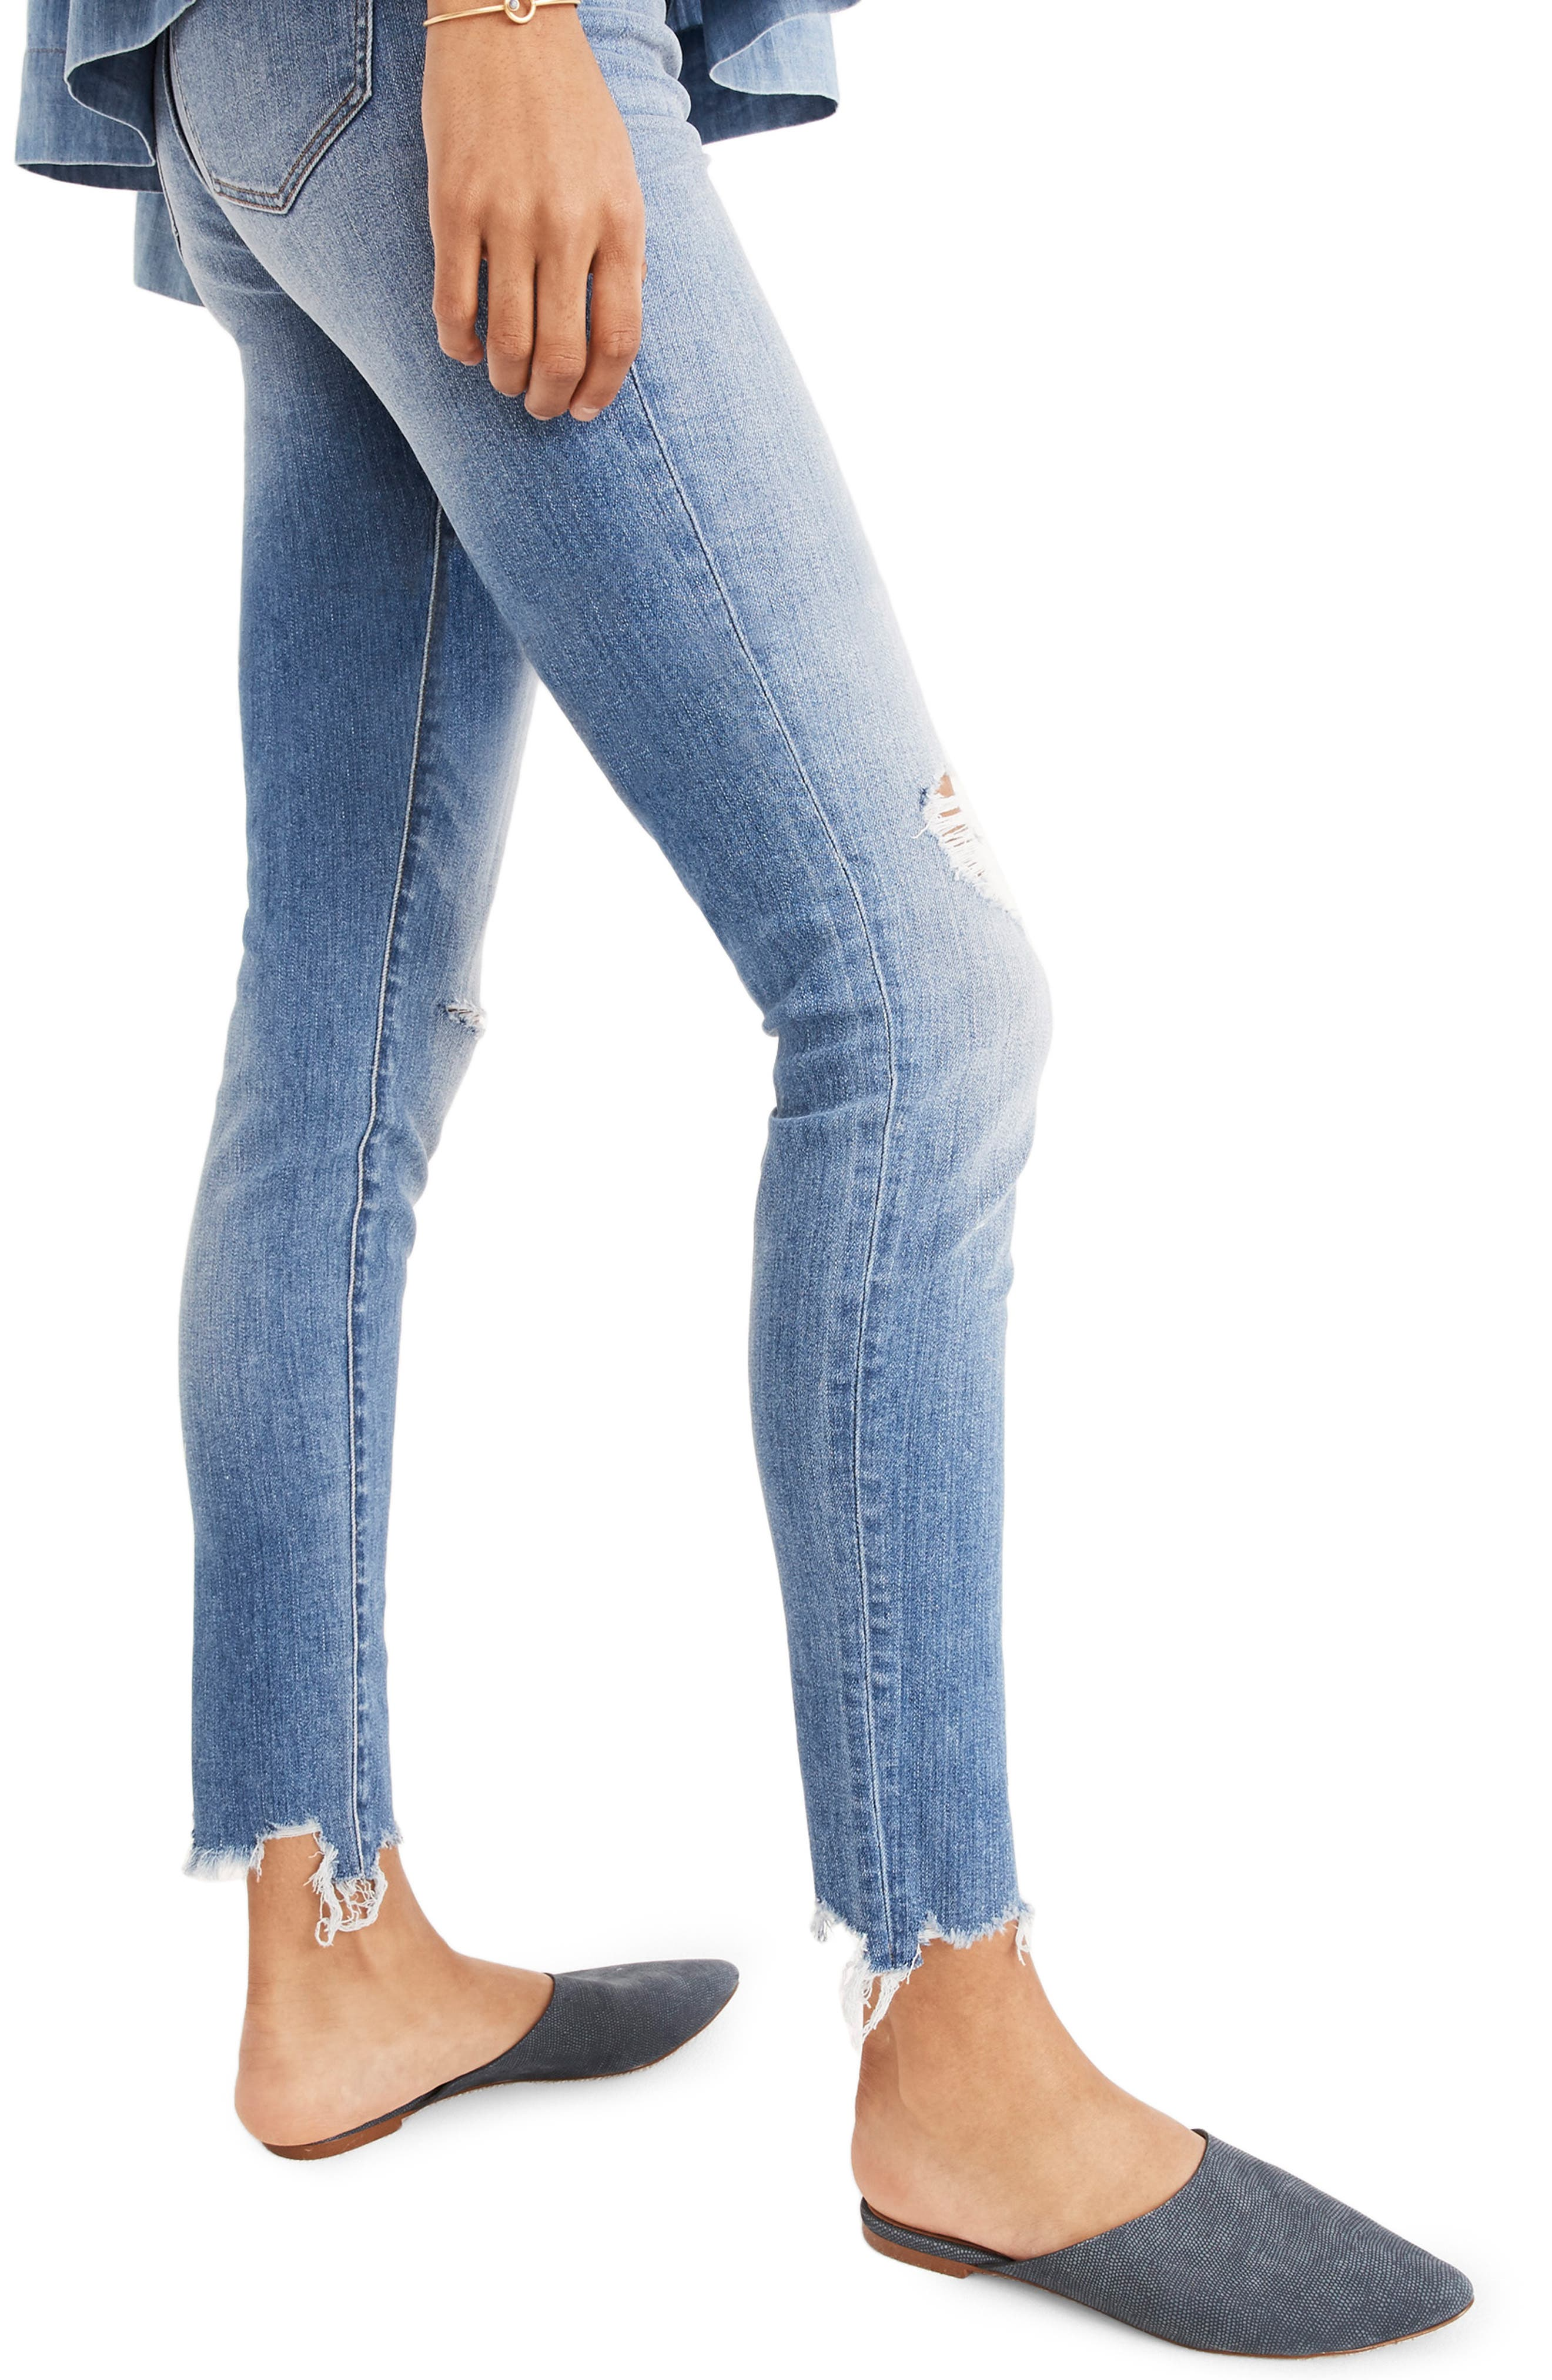 9-Inch Torn Knee Skinny Jeans,                             Alternate thumbnail 3, color,                             400